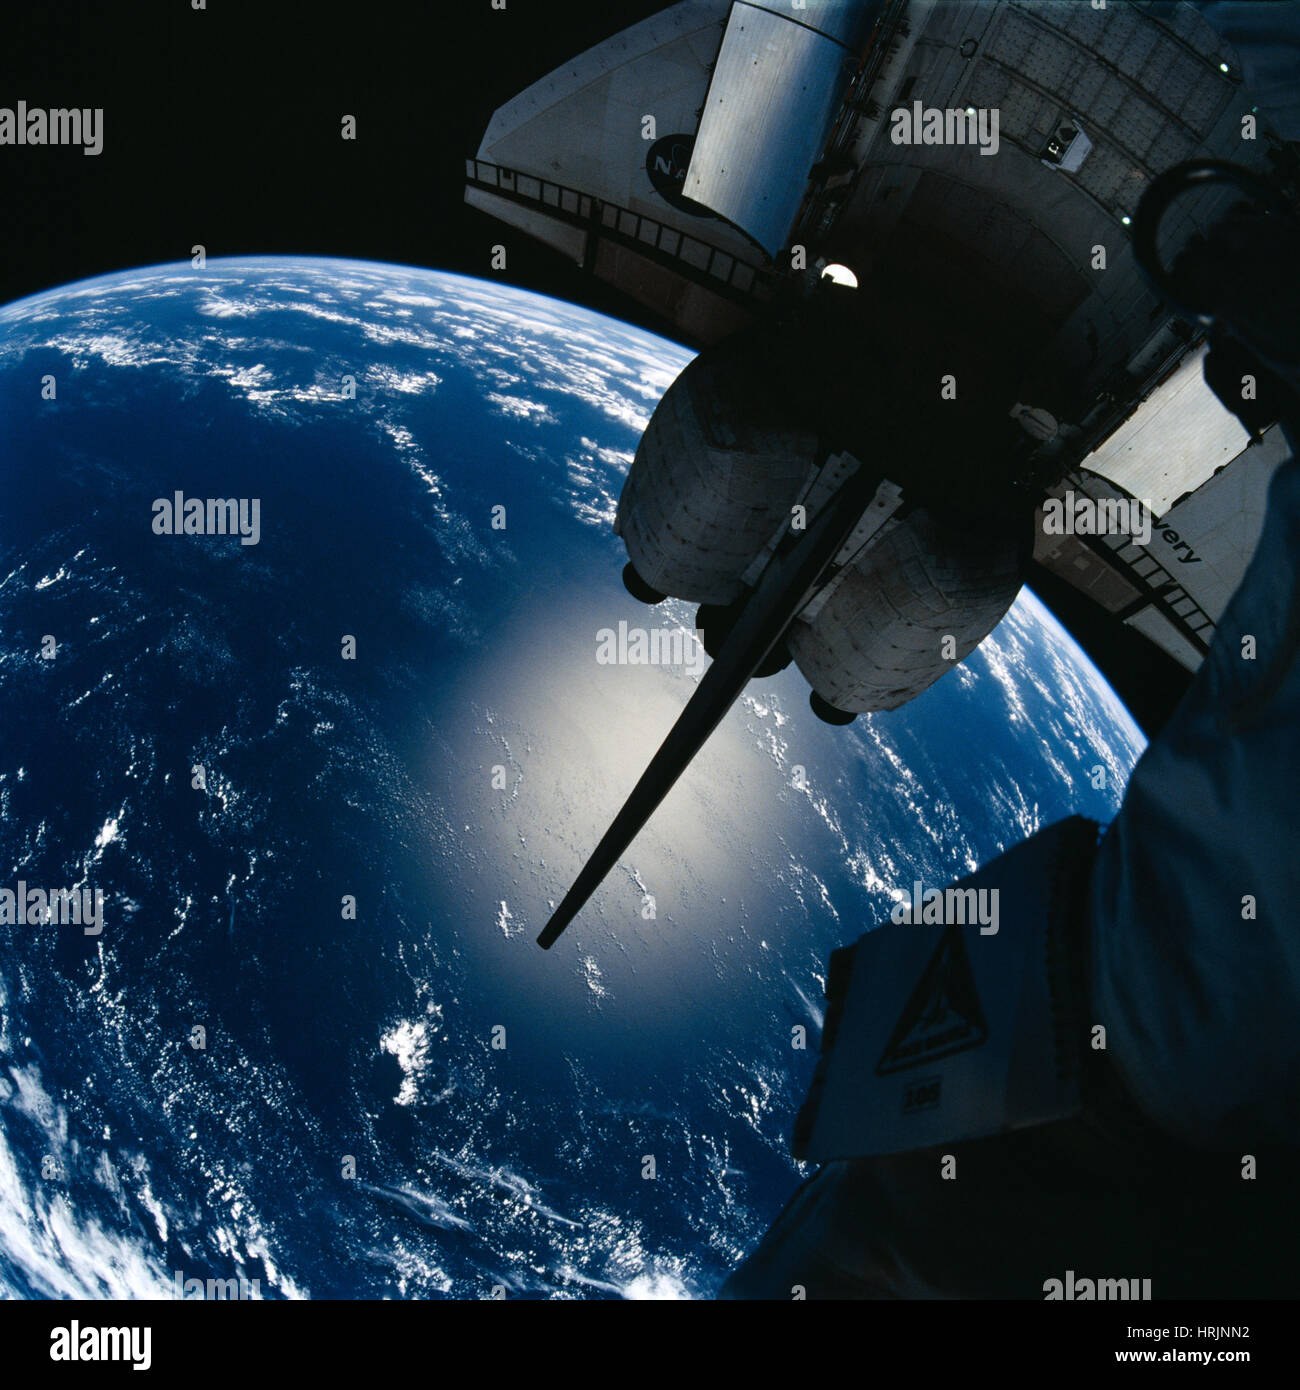 STS-105, Space Shuttle Discovery and Earth - Stock Image